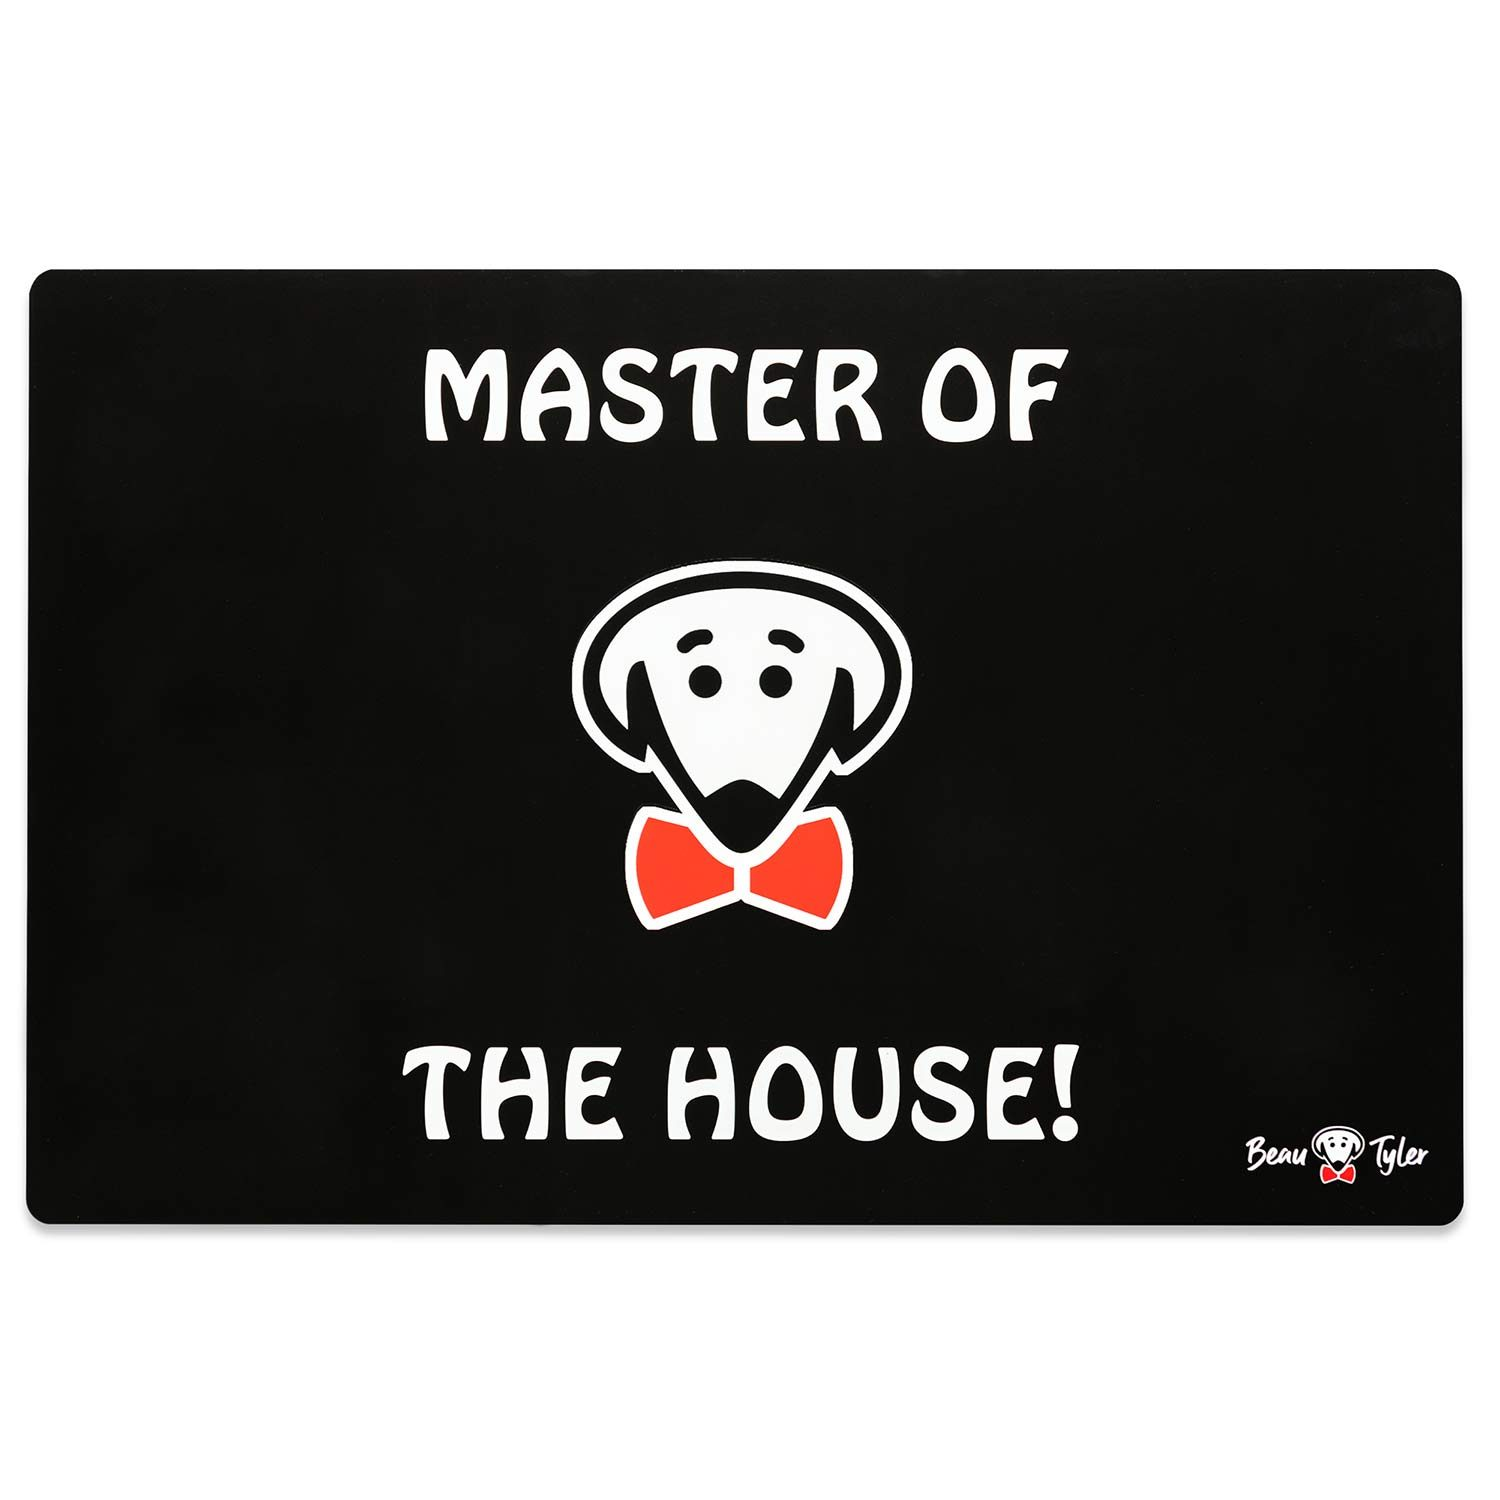 The Boss Eats Here pet mat (Master of the House! on back) in black by Beau Tyler